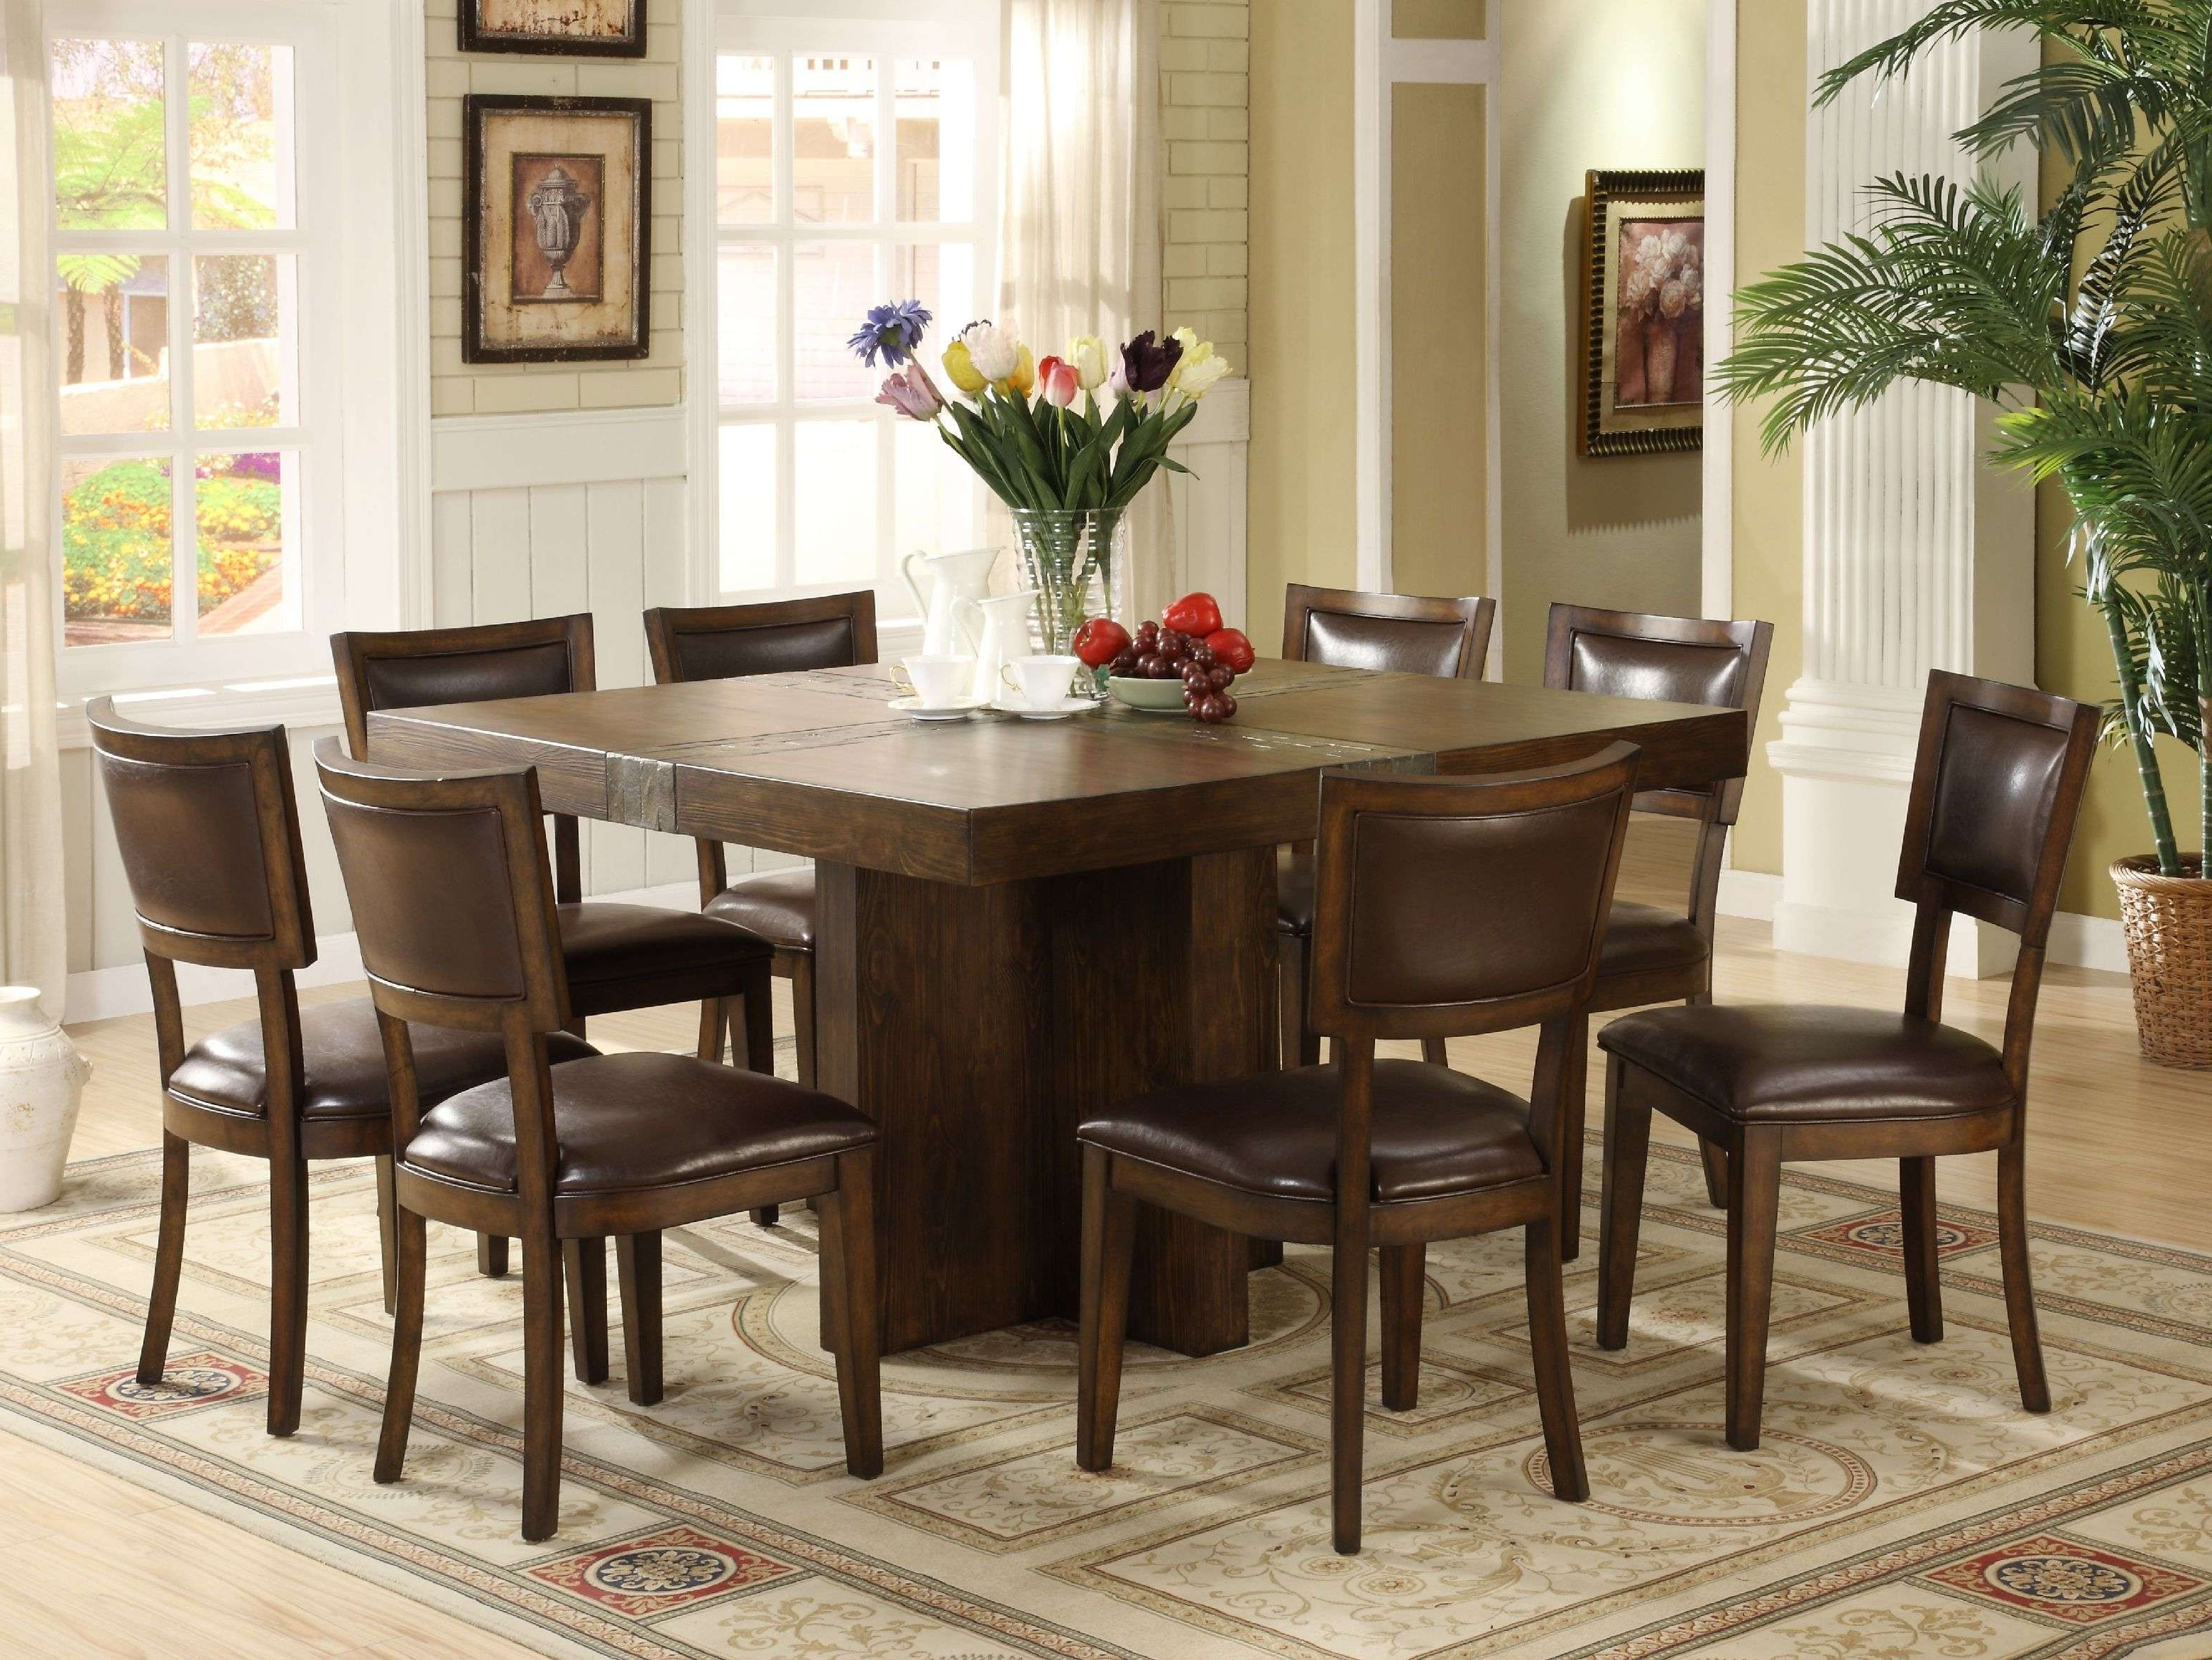 10 Seater Dining Table And Chairs Beautiful Best 8 Seater Dining Within Fashionable 10 Seater Dining Tables And Chairs (View 5 of 25)